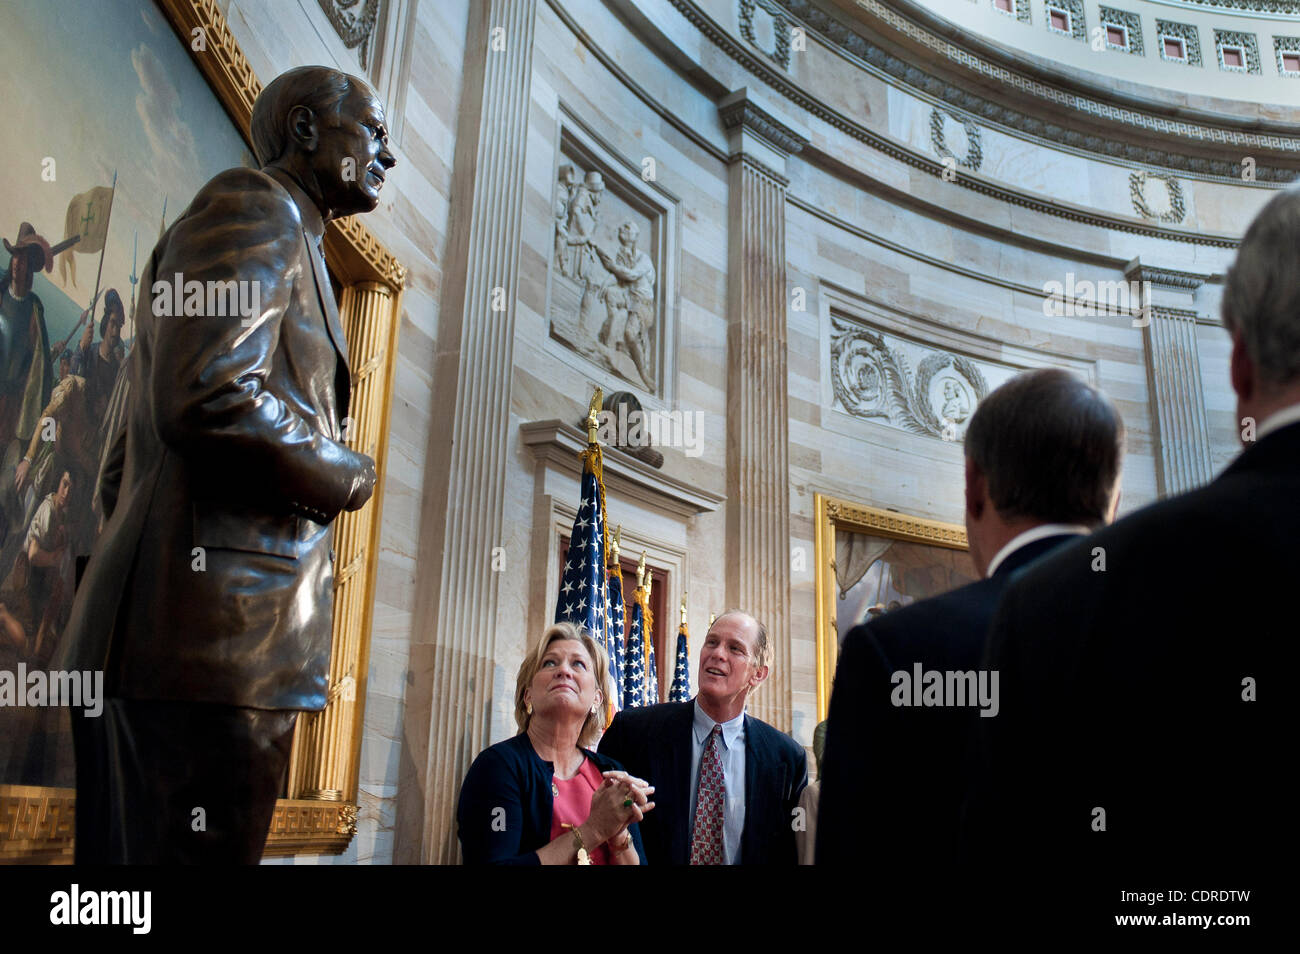 May 3, 2011 - Washington, District of Columbia, U.S. - STEVEN FORD and SUSAN FORD BALES, son and daugher of the - Stock Image